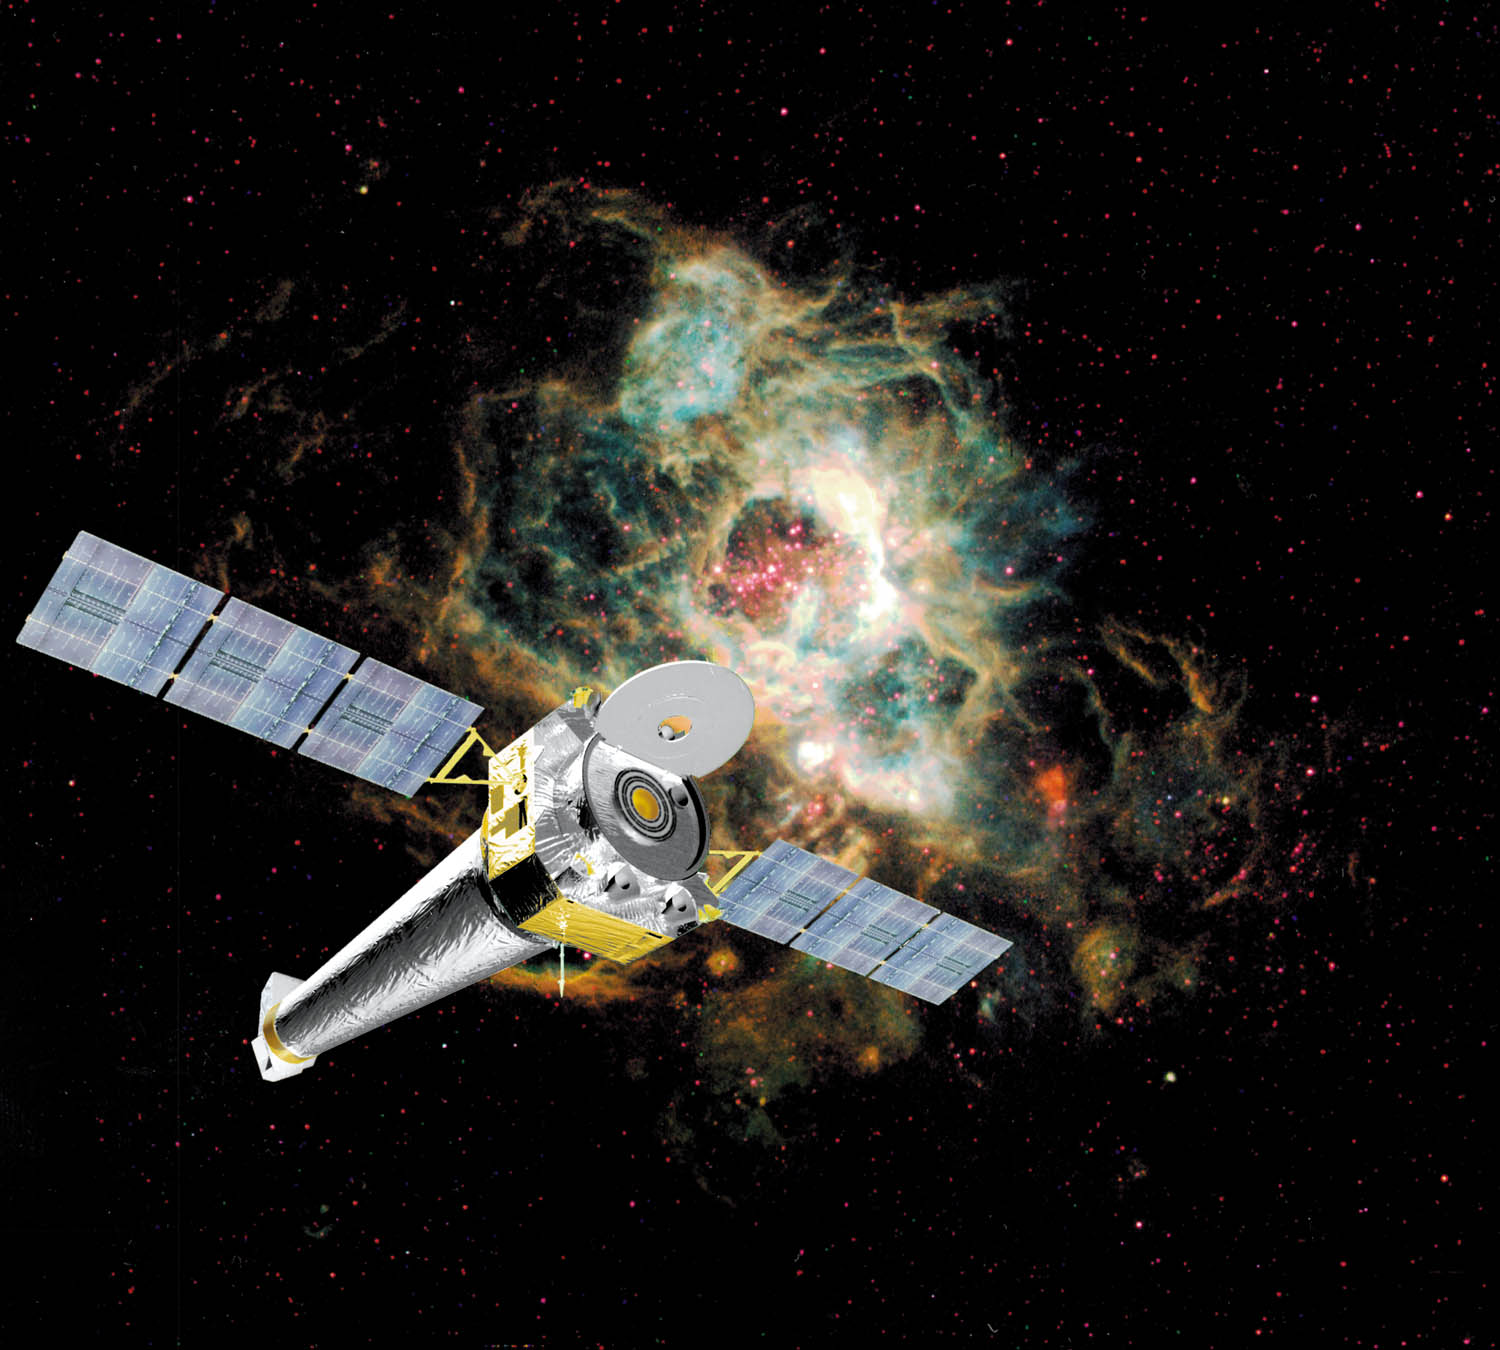 File:Chandra X-ray Observatory.jpg